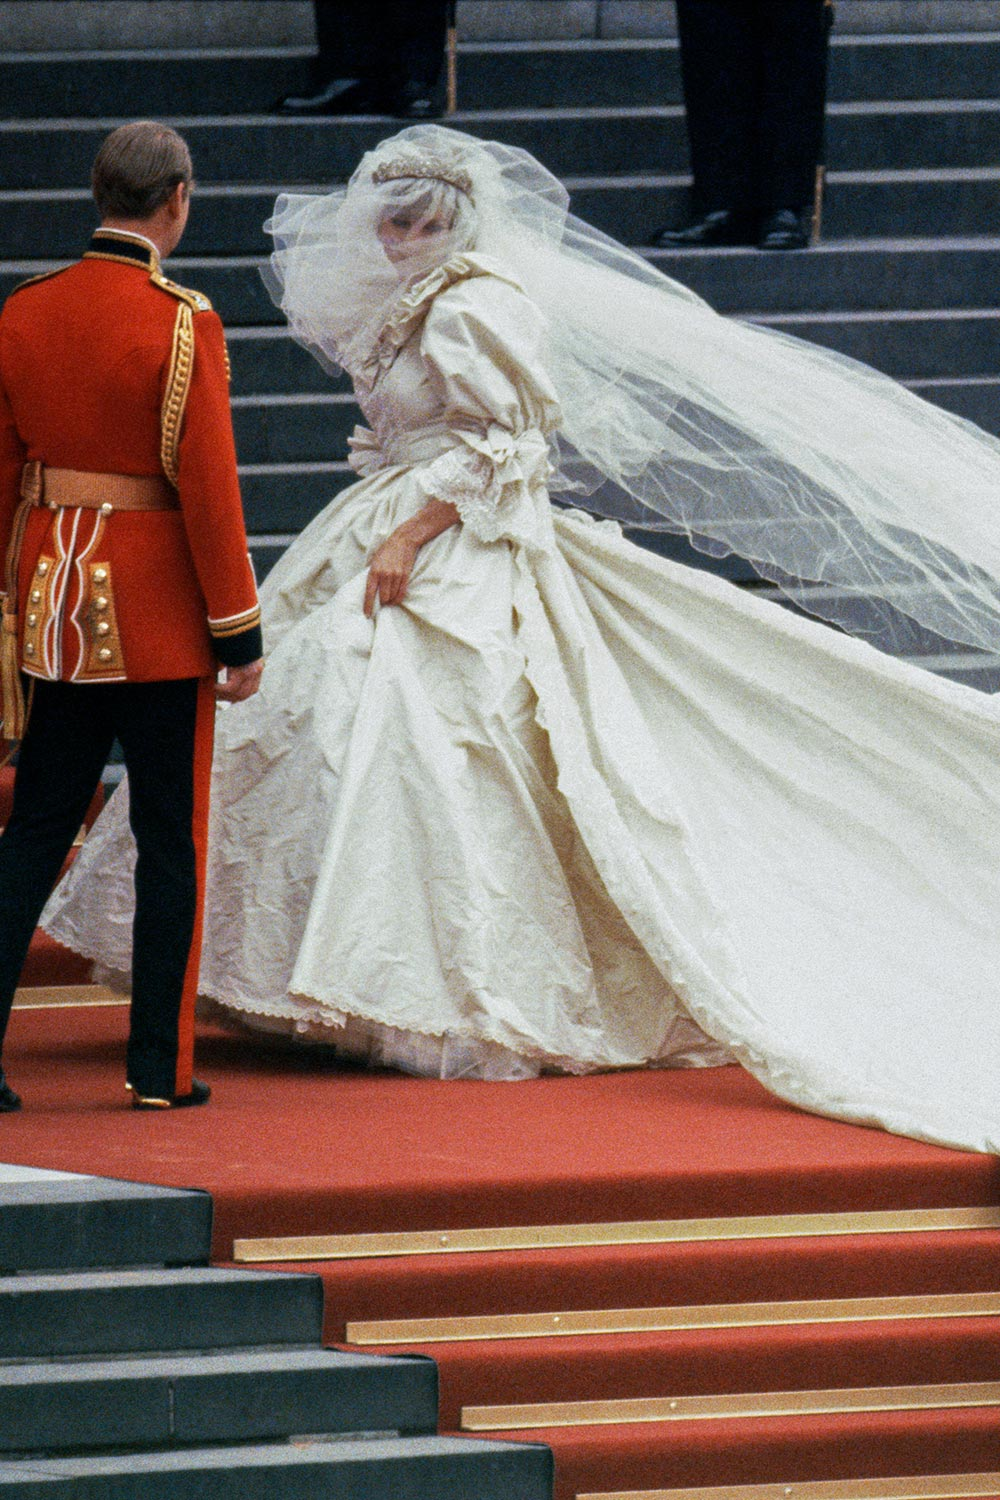 Royal Wedding Dresses The Most Iconic And Dreamy Gowns Ever,Wedding Teenage Girl Party Wear Dresses For Women